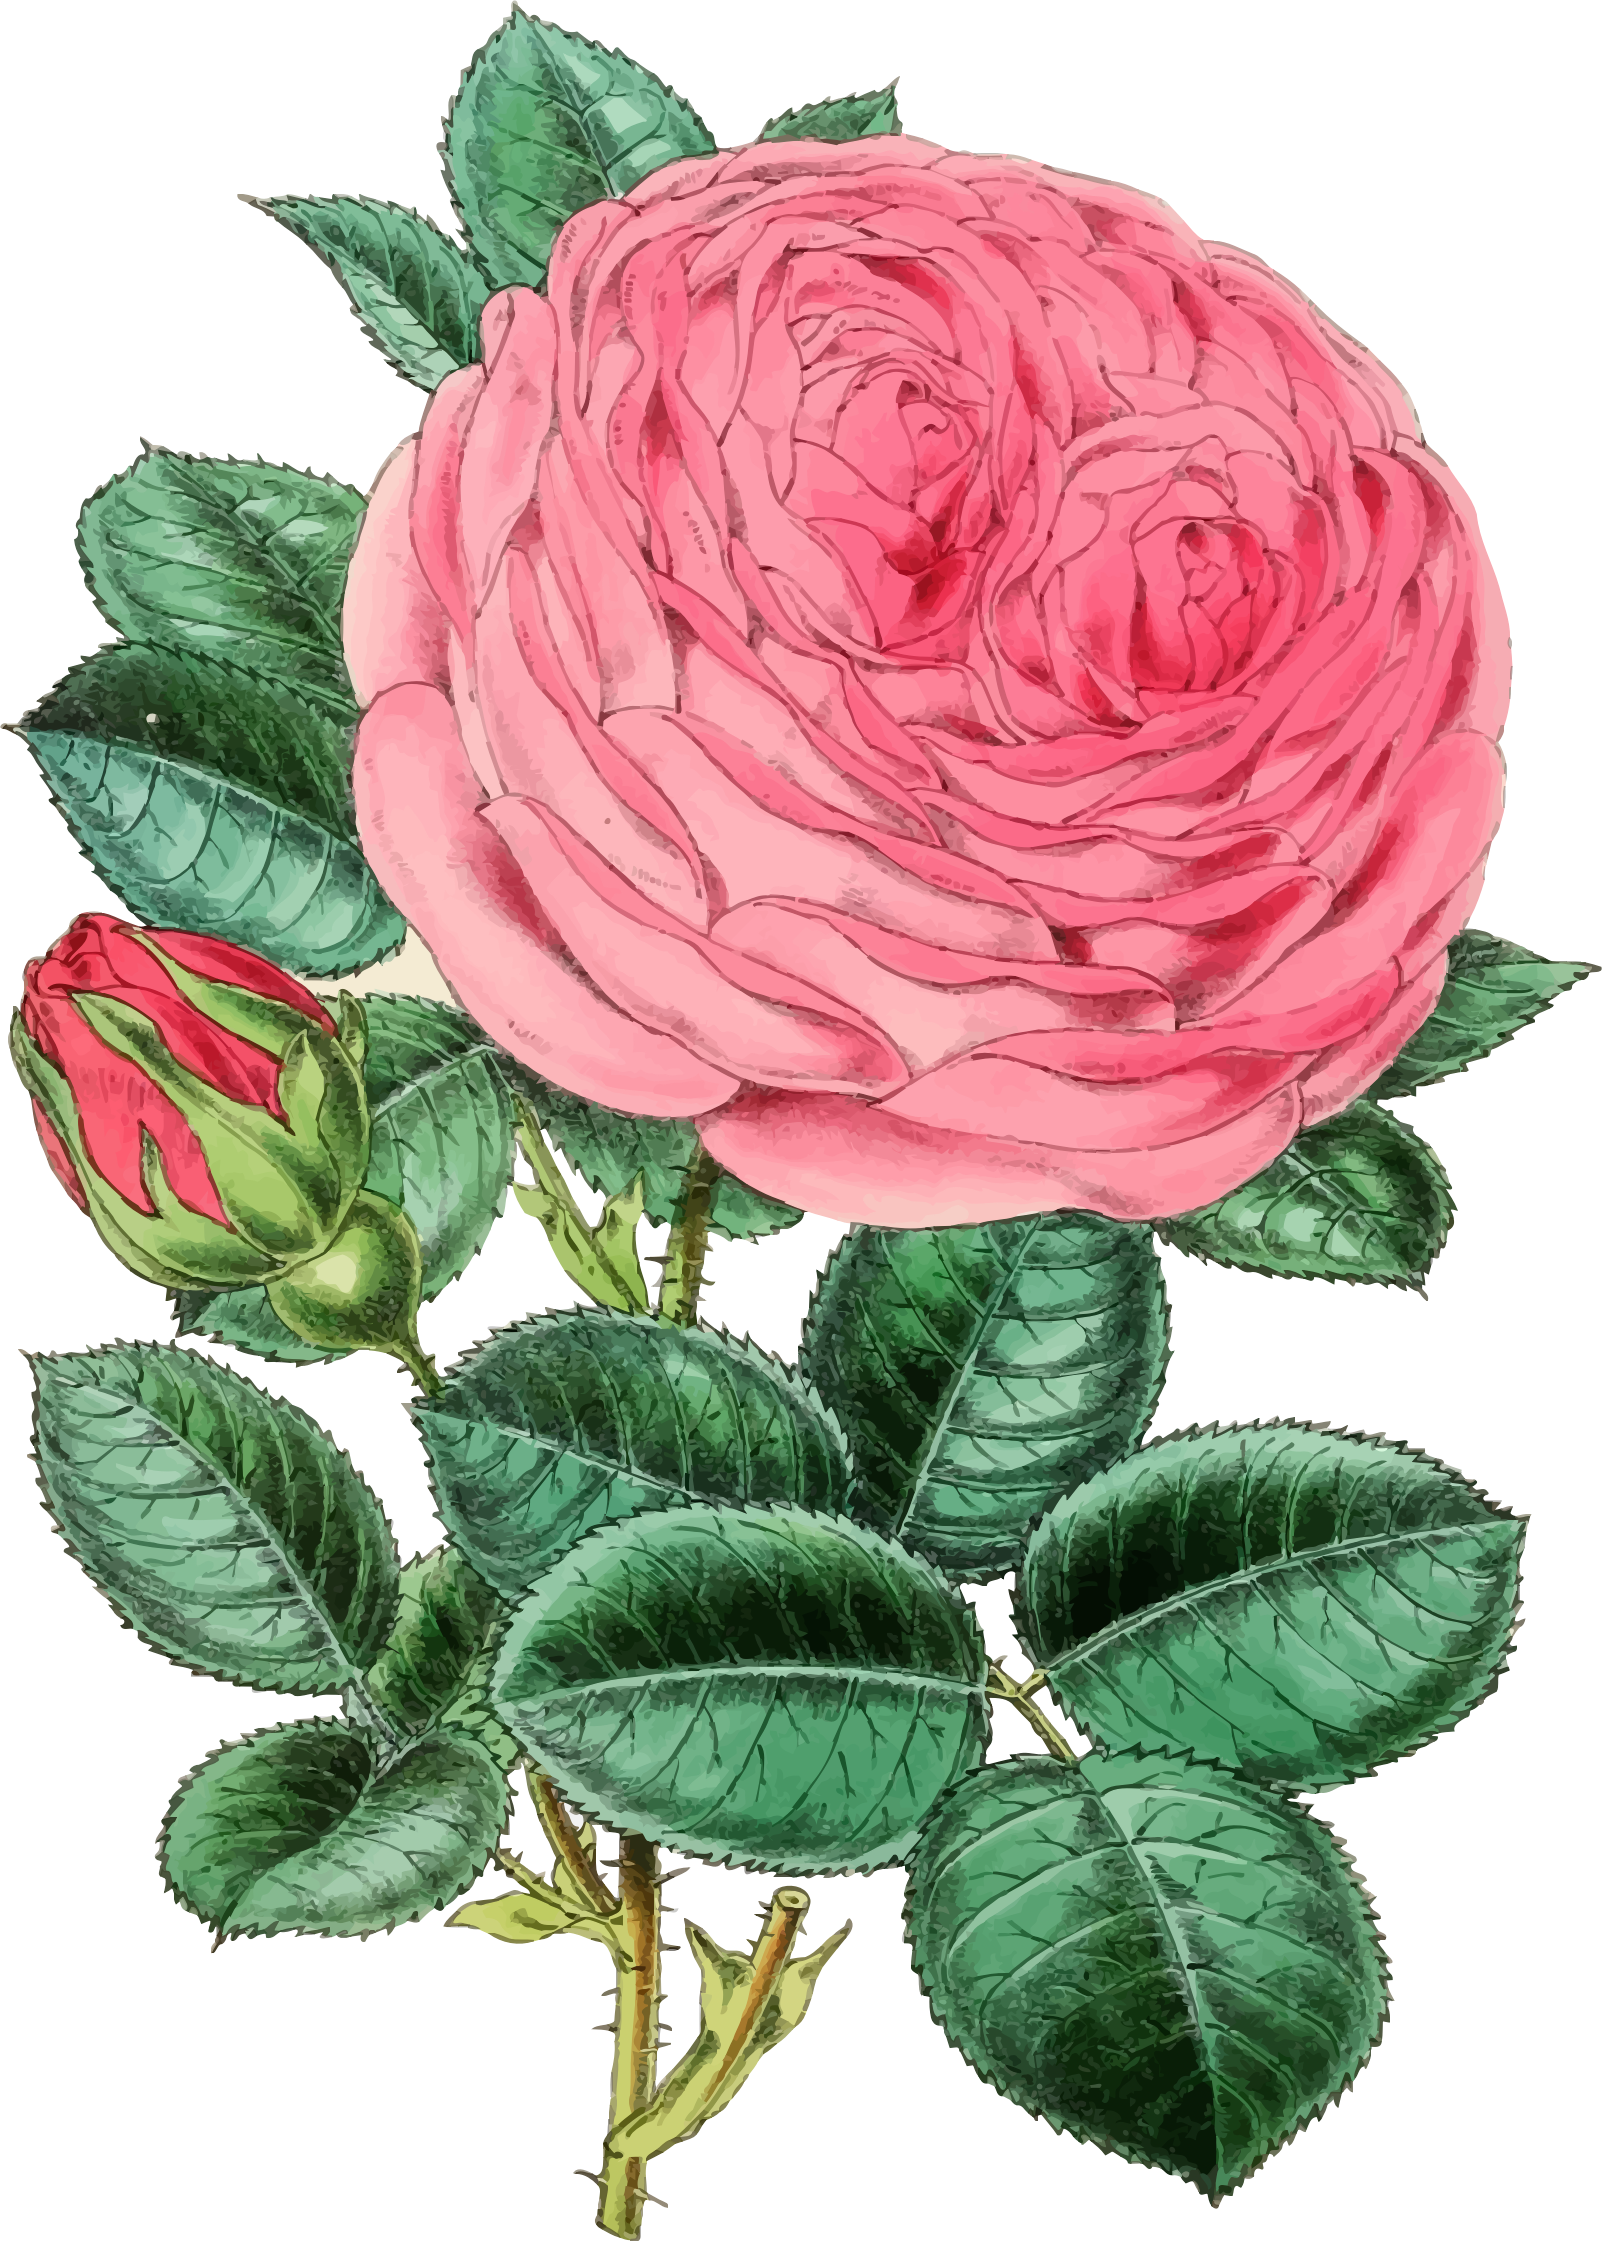 Vintage Rose Illustration 2 by GDJ